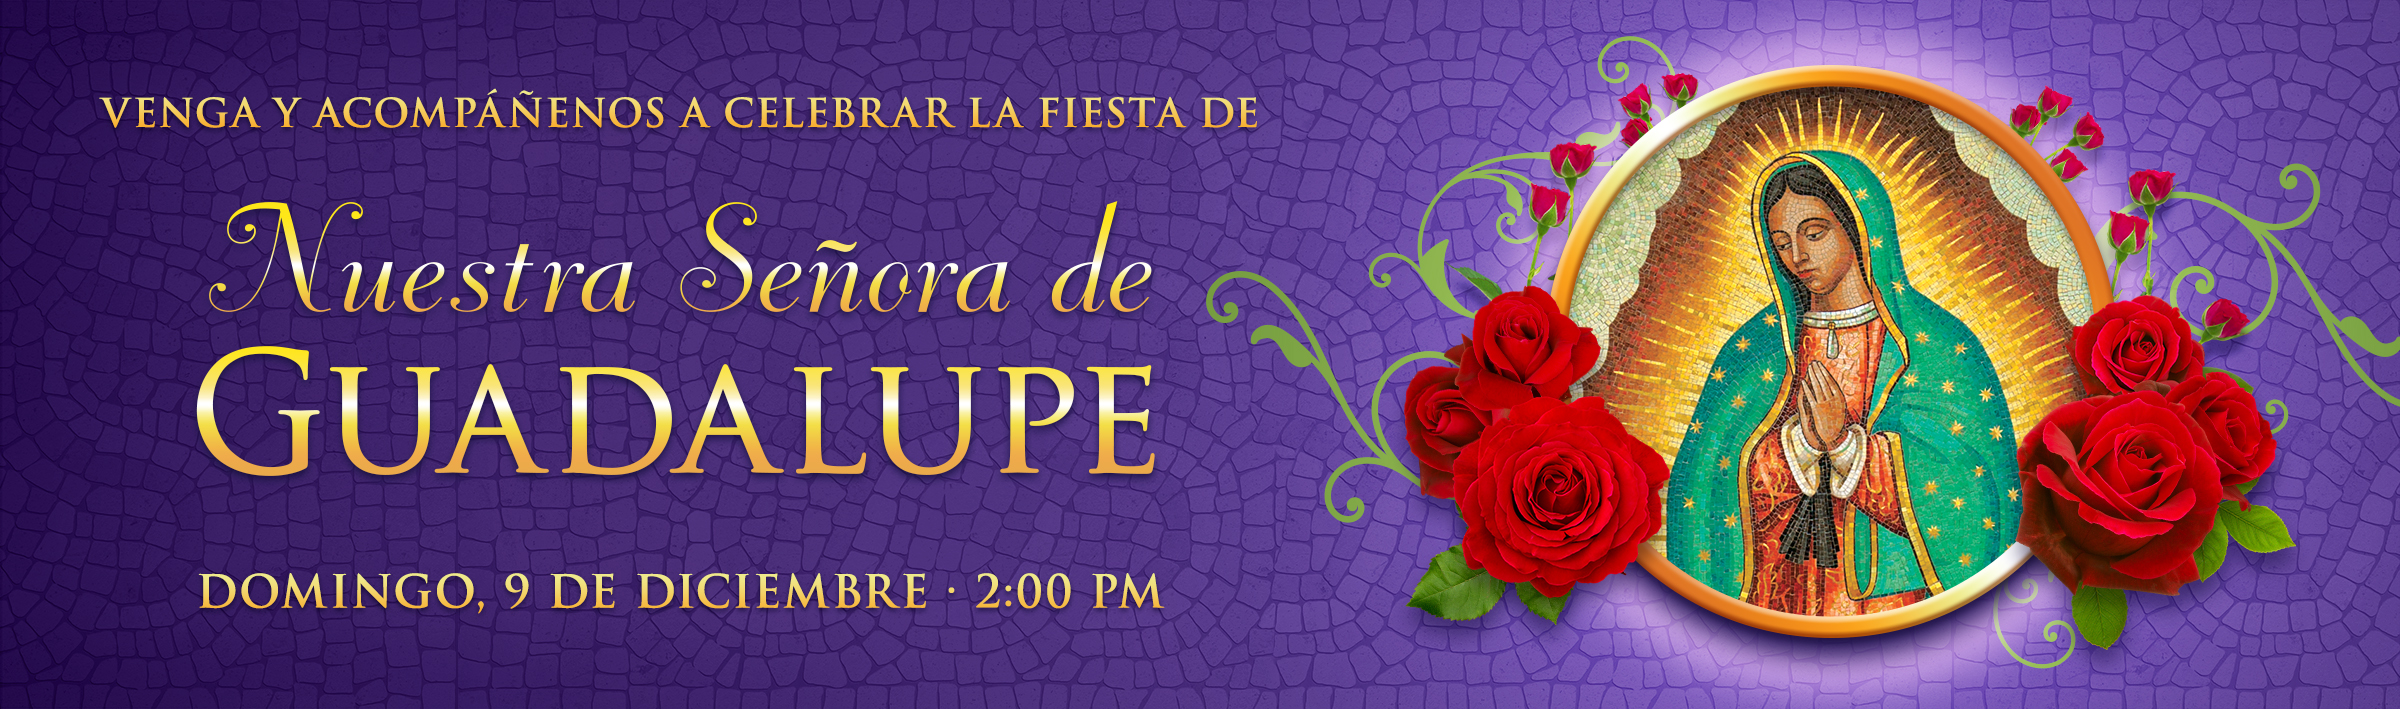 Our Lady of Guadalupe Celebration at Forest Lawn—Glendale